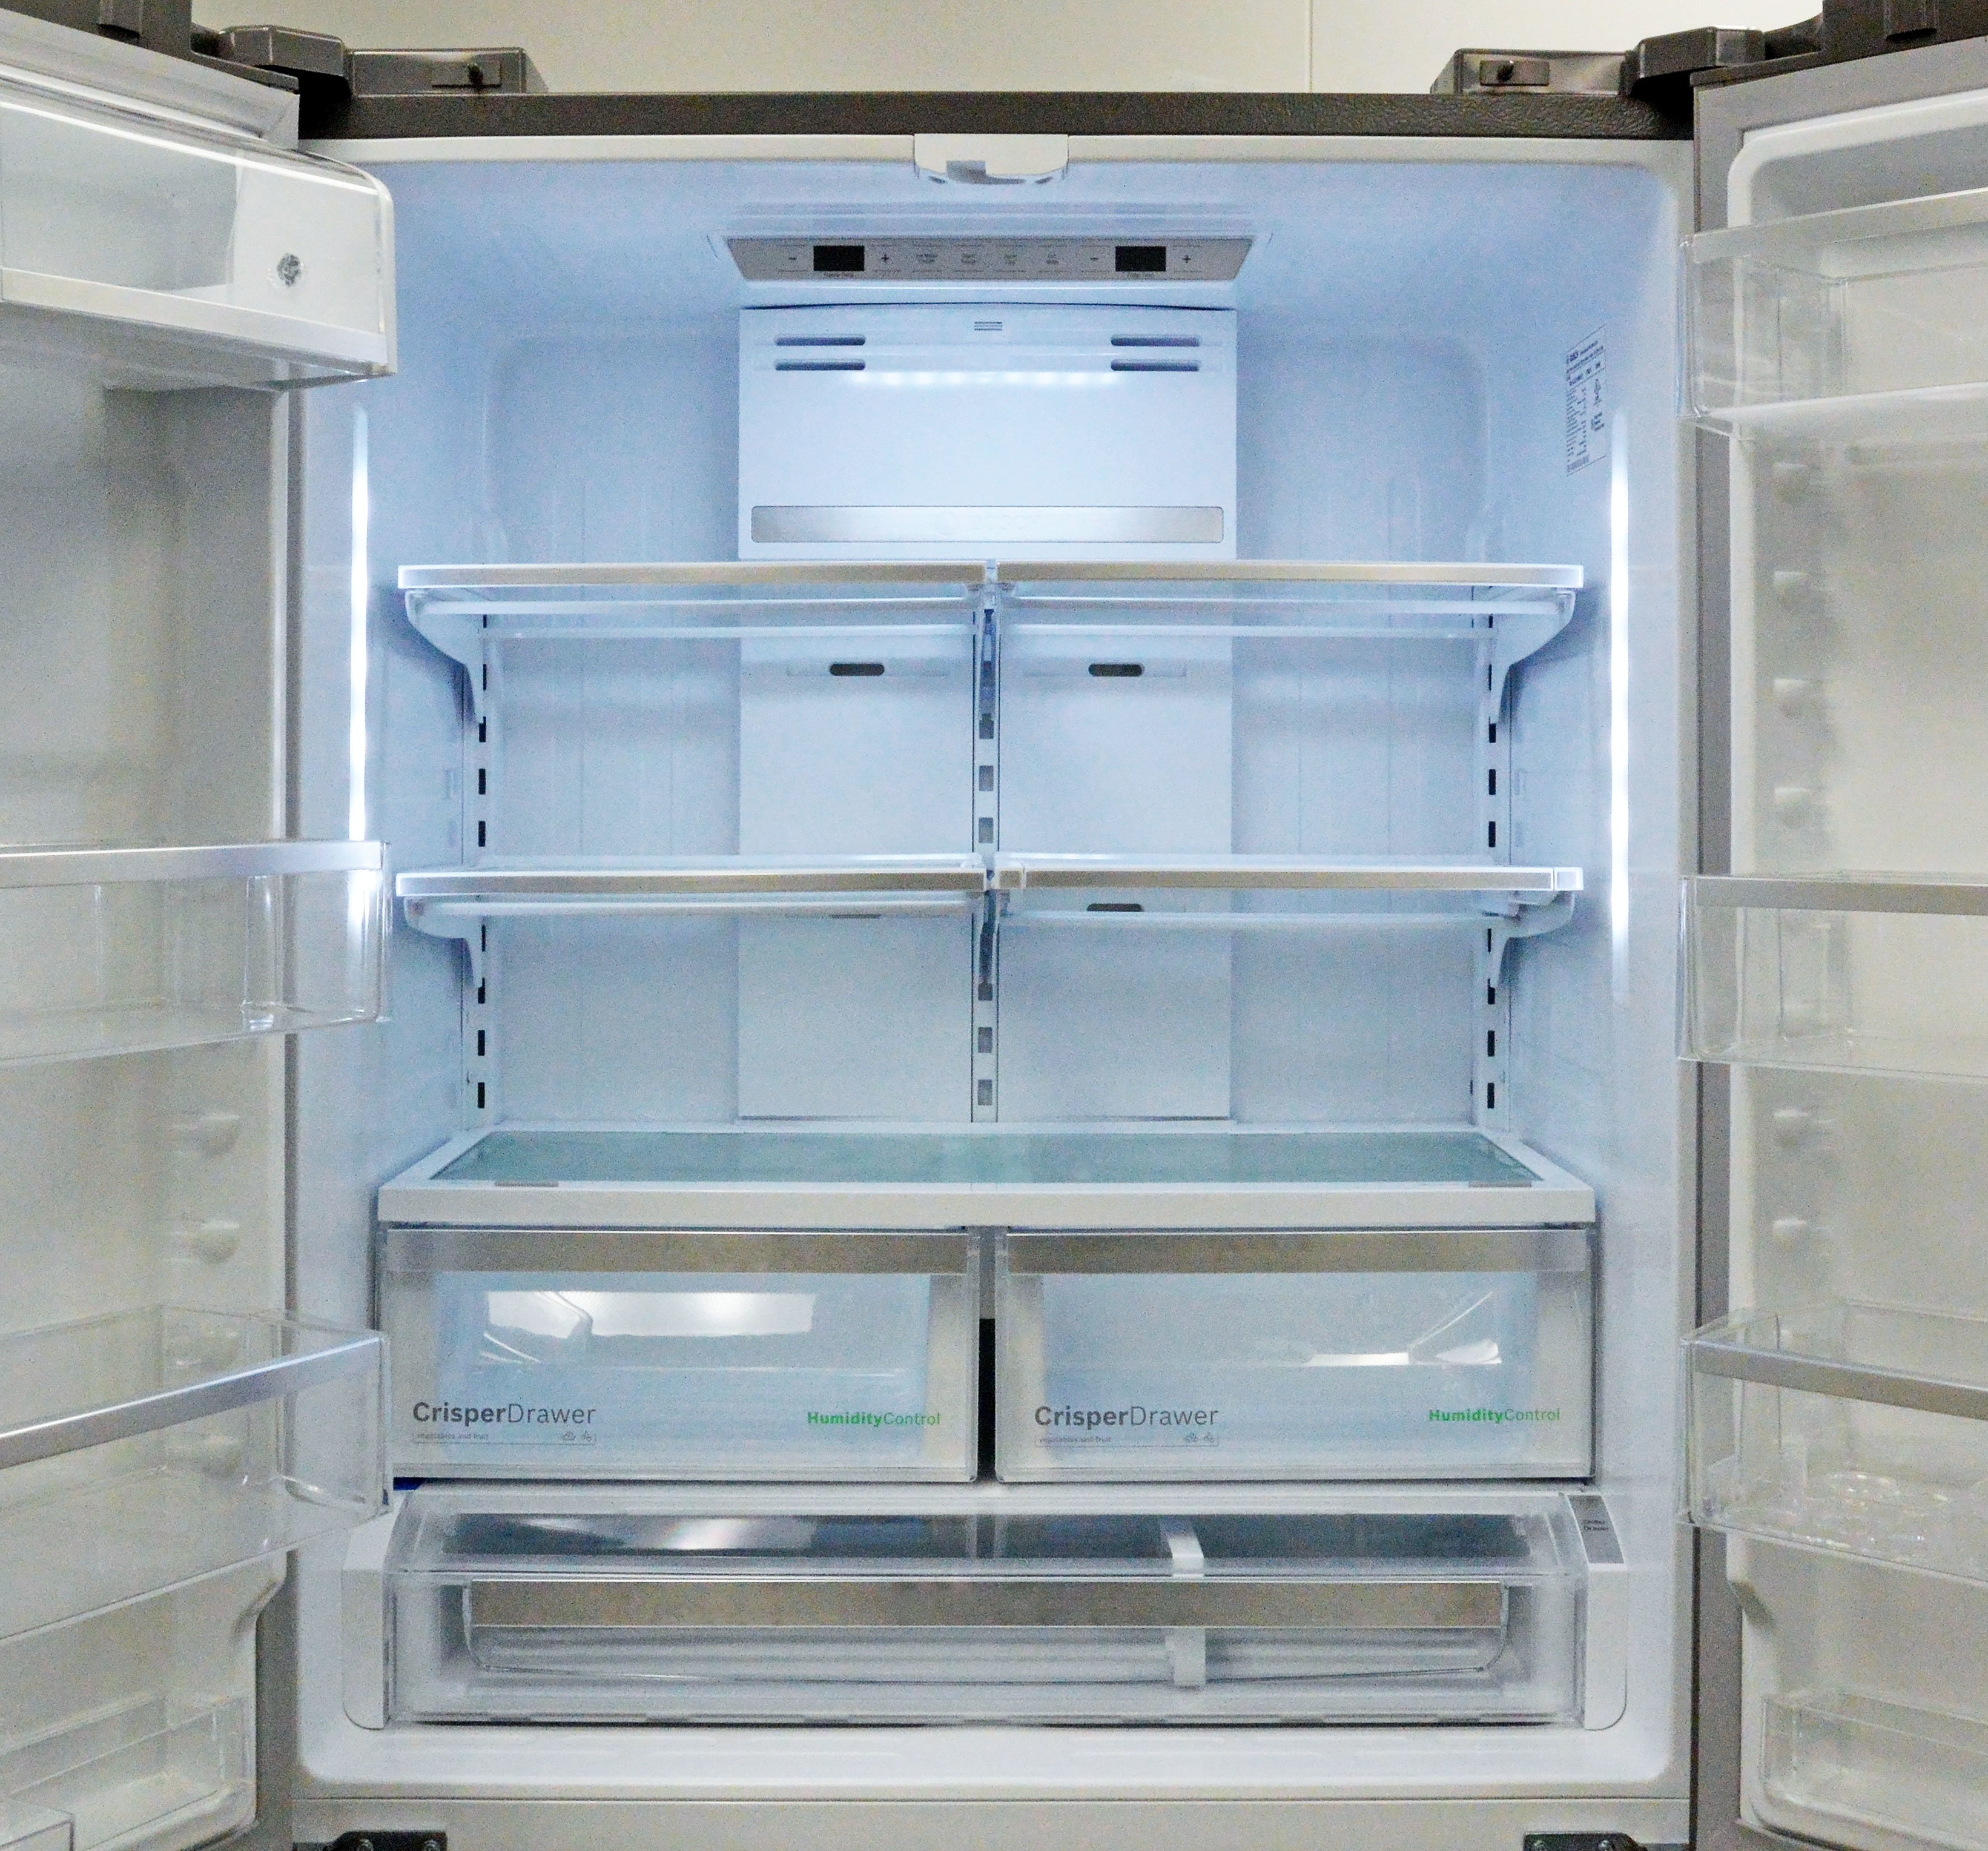 The fridge interior is well lit, but otherwise unremarkable. Note: in the 80SNS model, the control panel up top wouldn't be there.